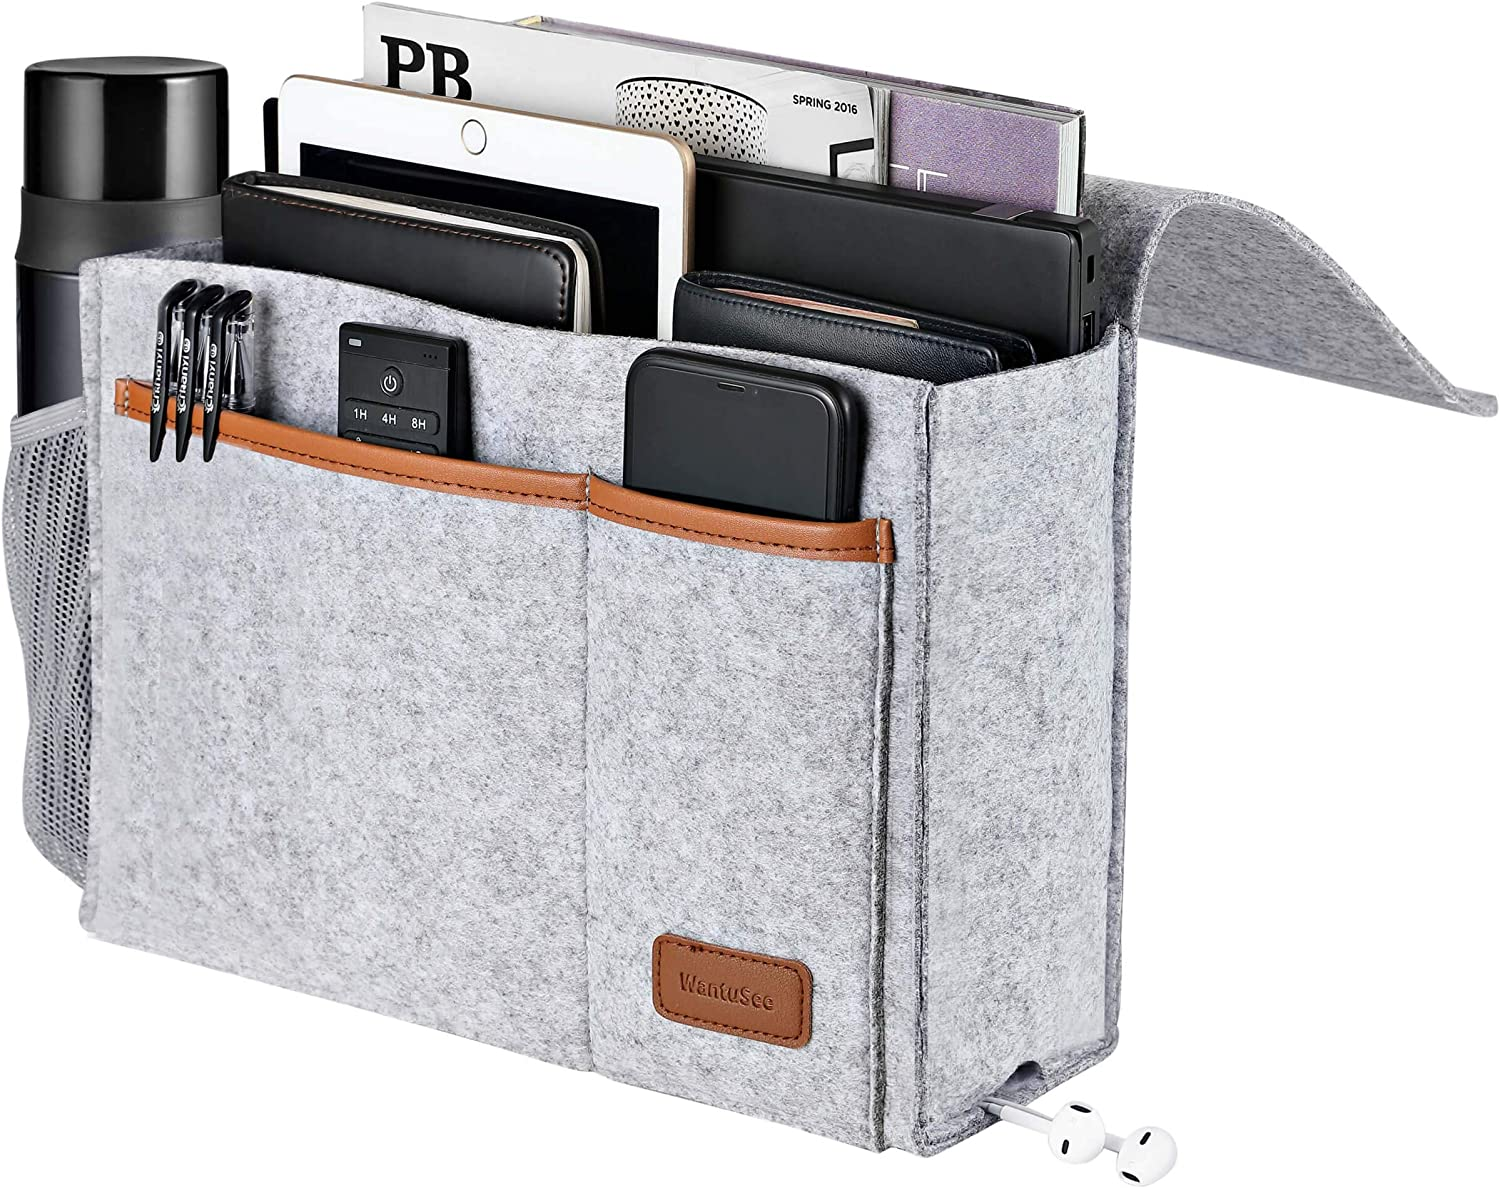 Bedside Caddy, Felt Bed Storage Organizer Hanging Bag Holder with 5 Pockets, Magazine Book Phone Tablet iPad Cables Remote and Water Bottle Holder for Home Dorm Bed Sofa, Light Gray